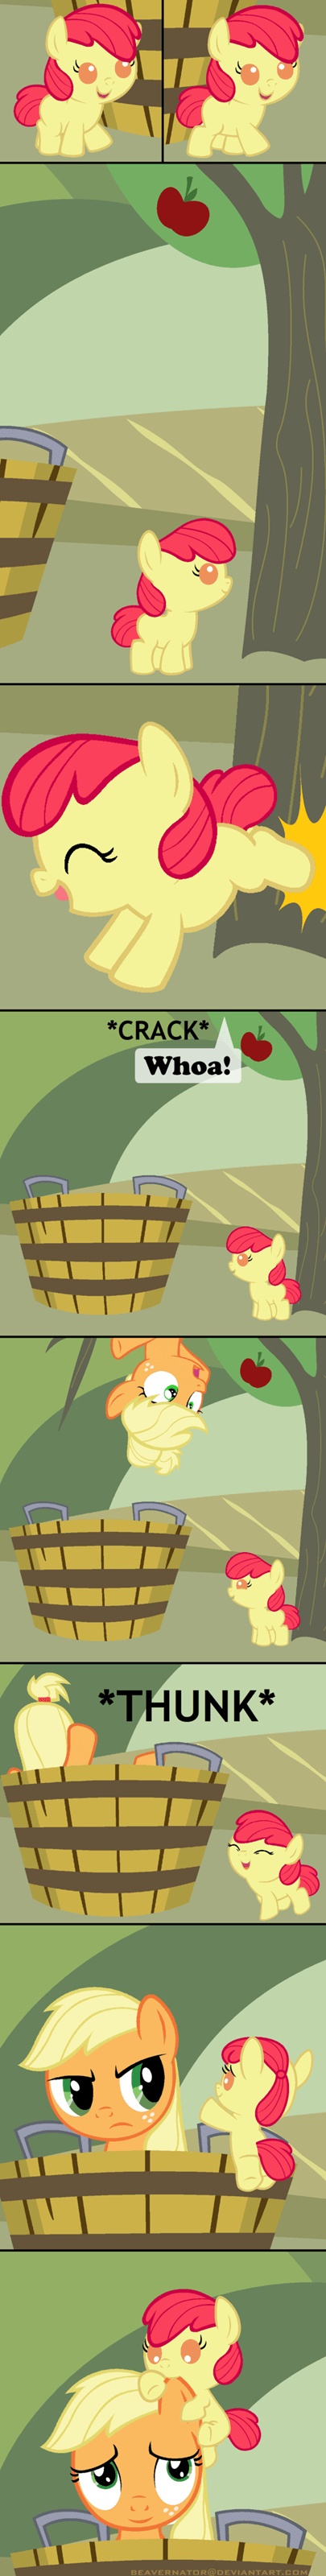 applejack apple bloom cute - 7816058368